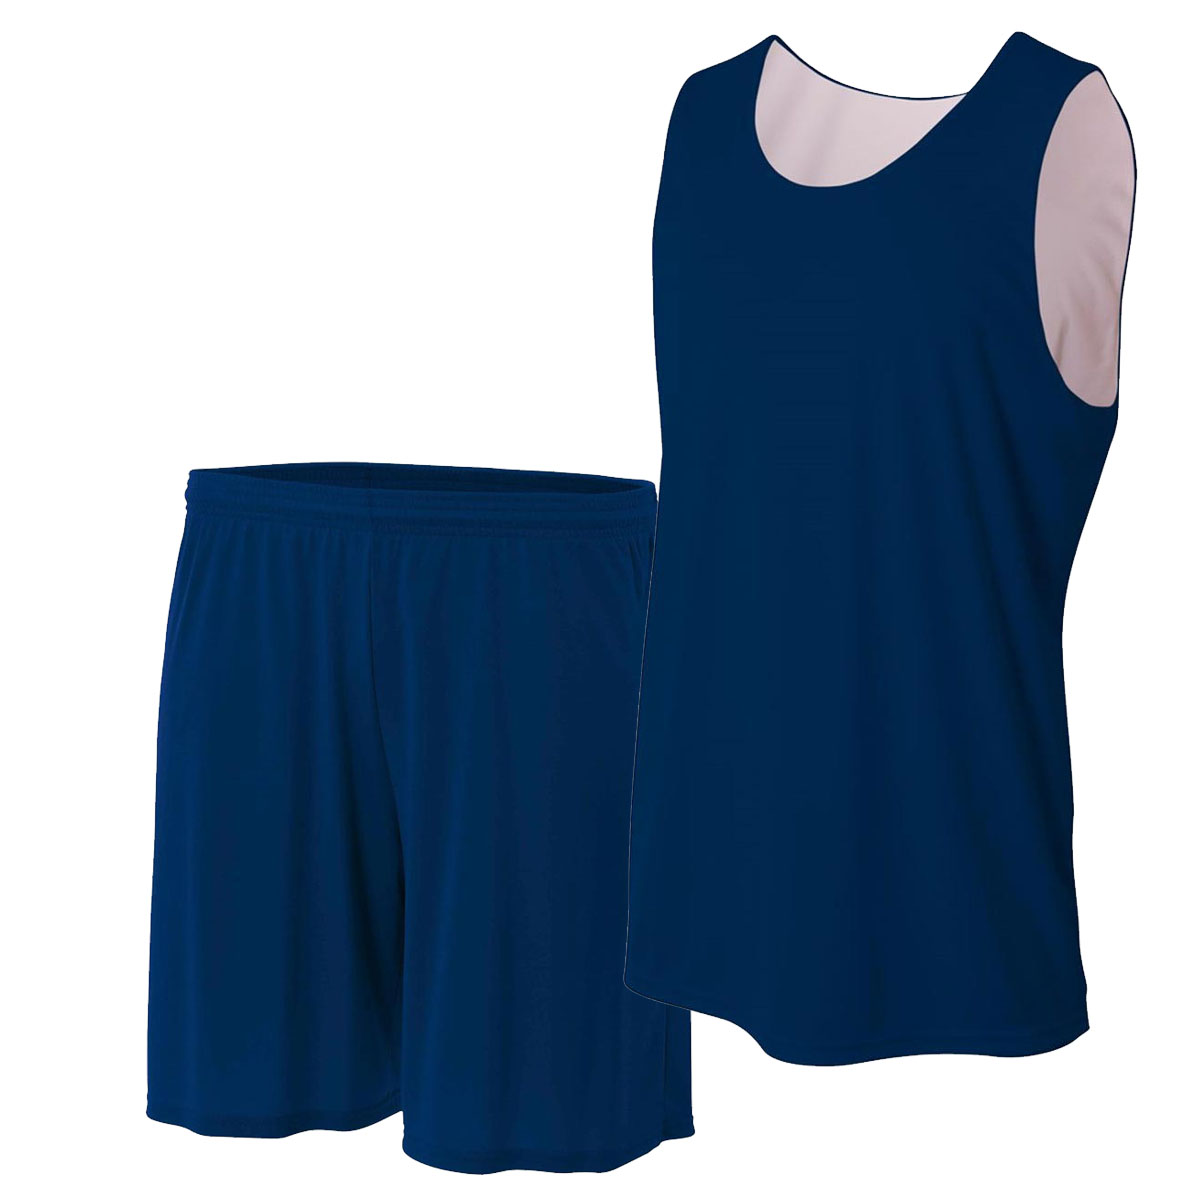 Reversible Basketball Uniforms Manufacturers in Jalandhar in Belarus